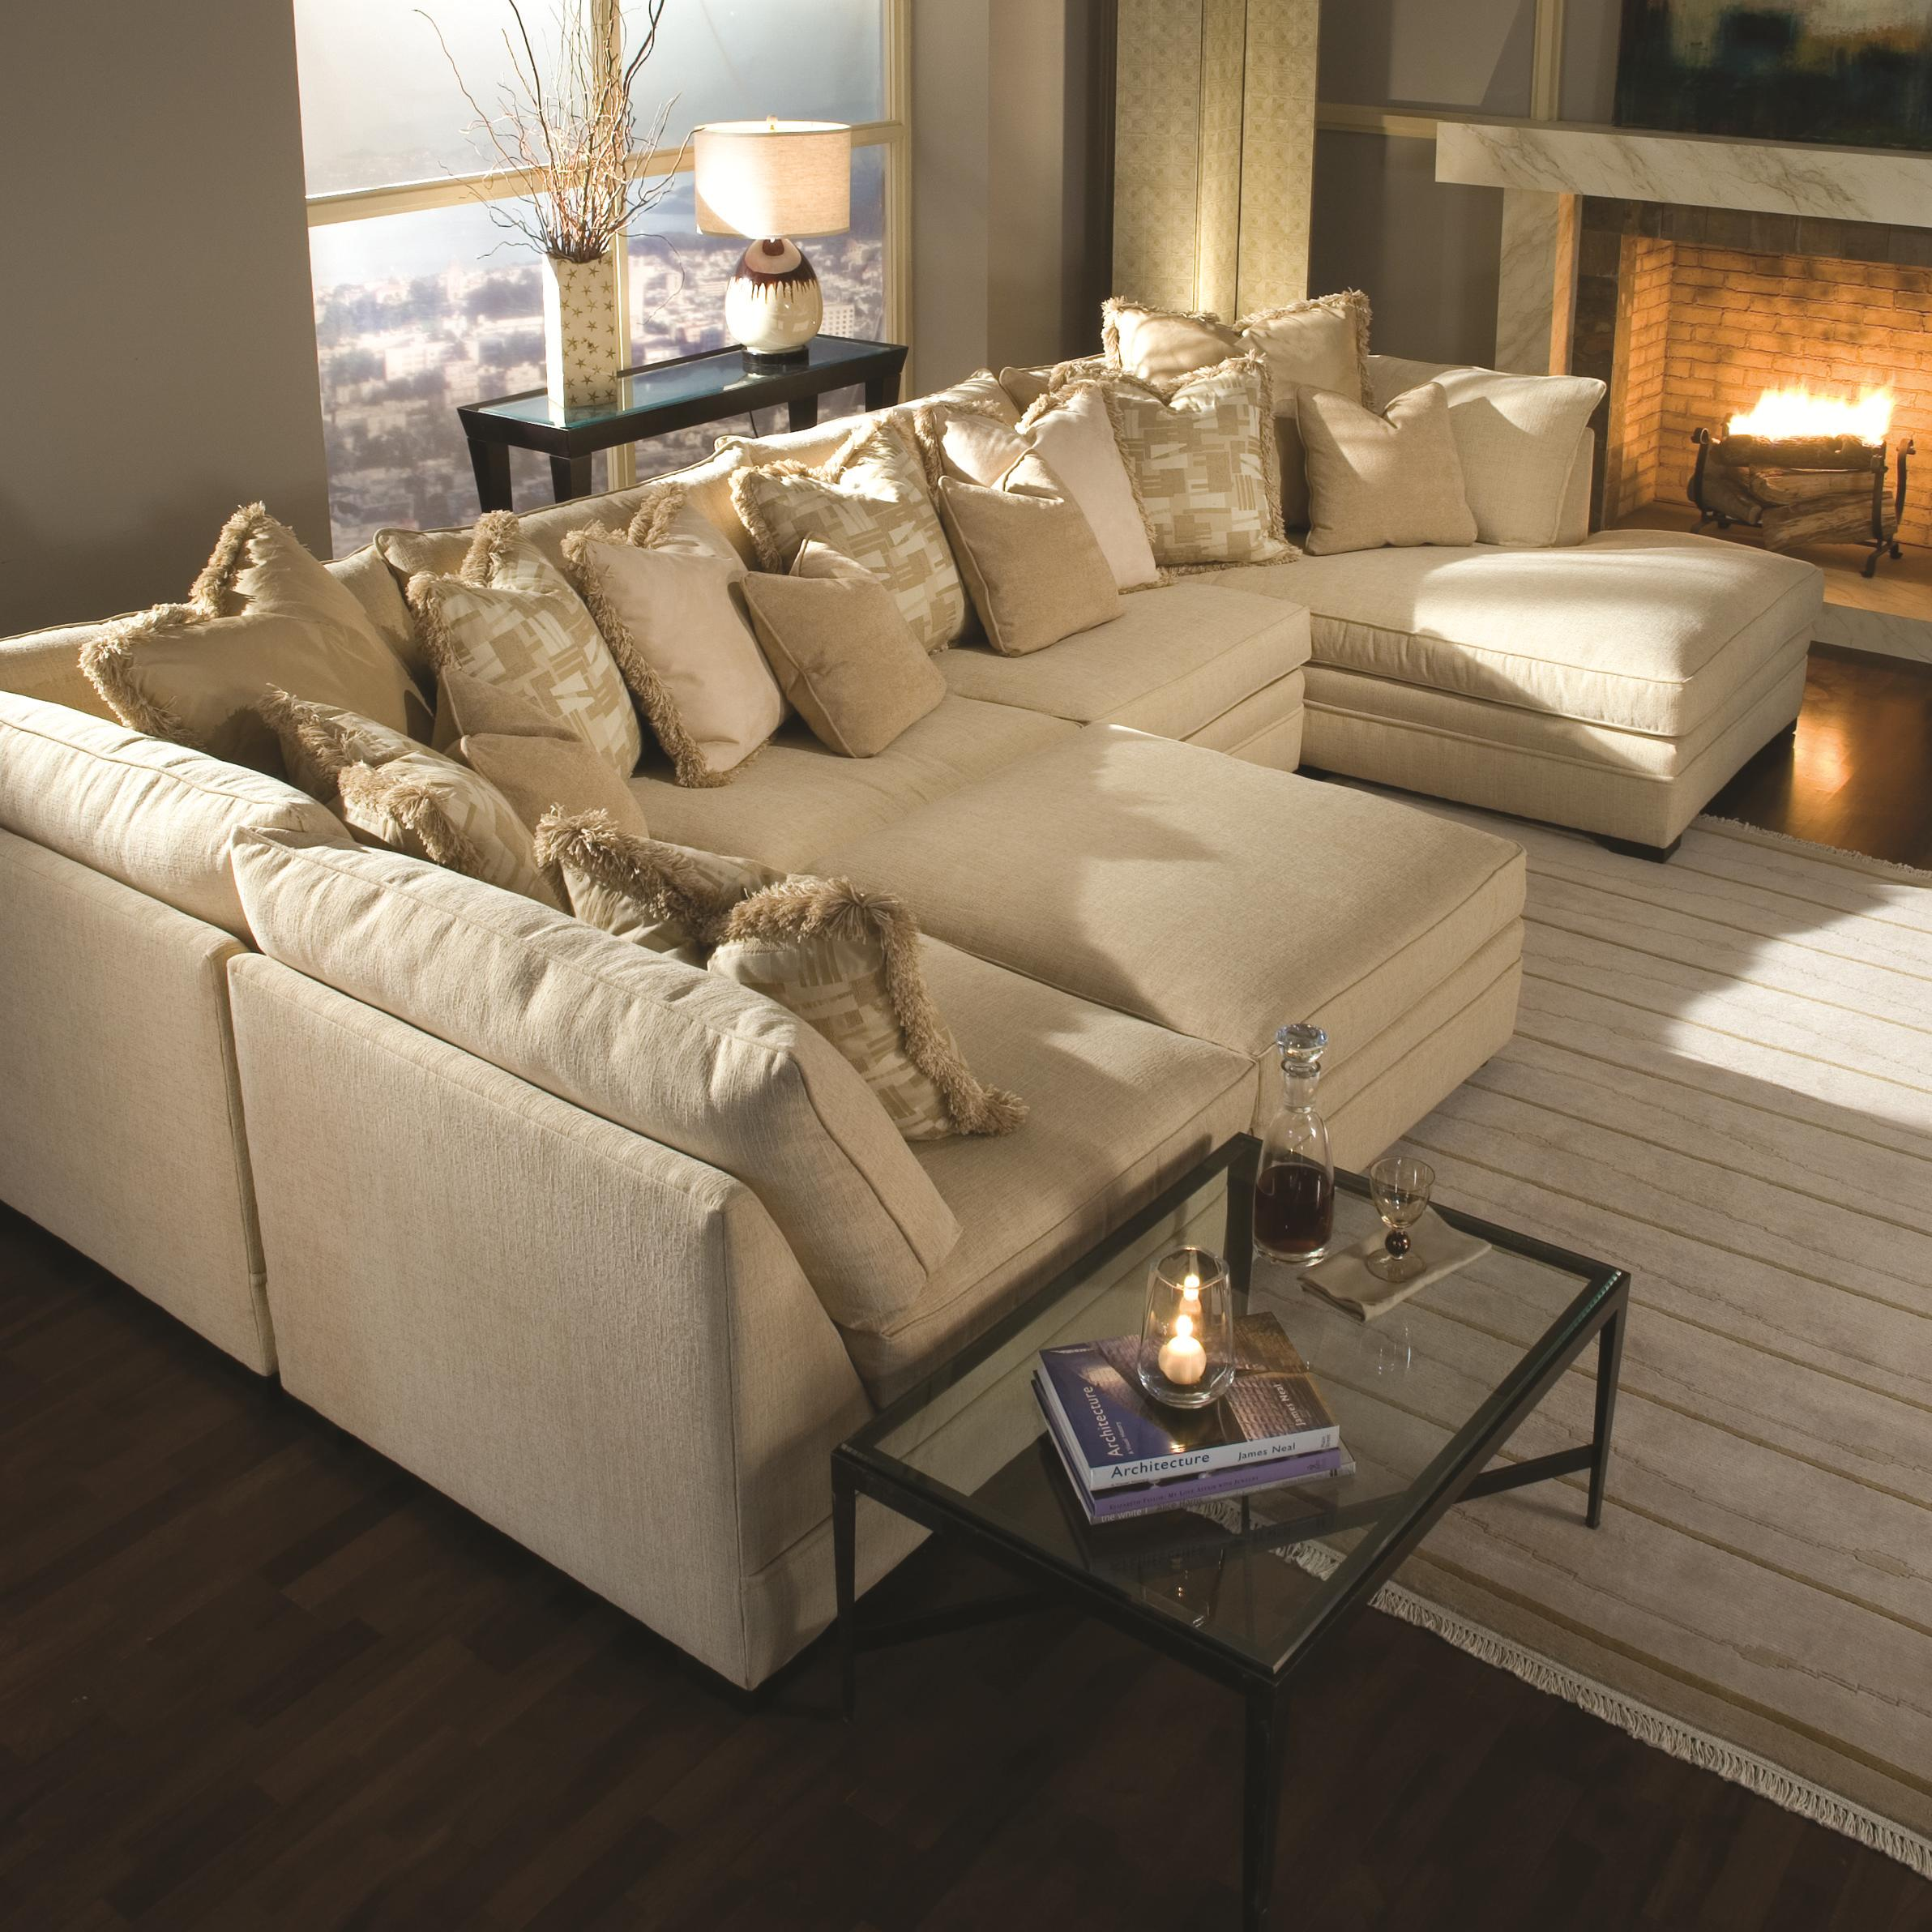 Sectional Sofas For Large Rooms: U Shaped Sectional With Chaise Design